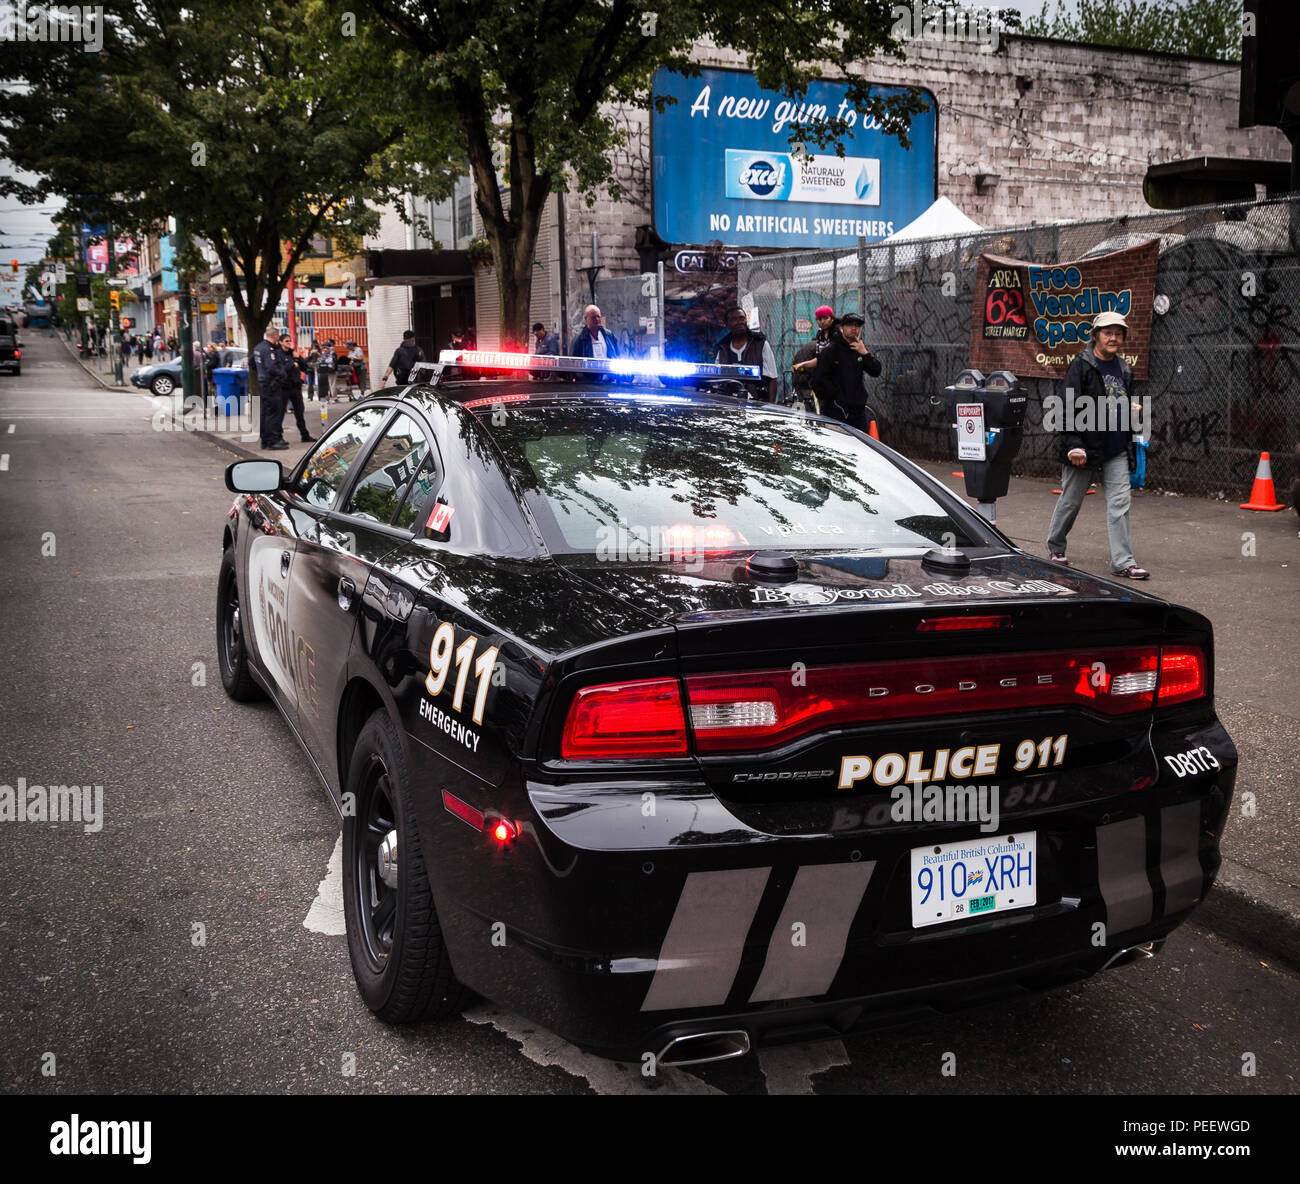 VANCOUVER, BC, CANADA - MAY 11, 2016: VPD cruiser on Vancouver's Downtown Eastside with officers in the background dealing with an issue - Stock Image